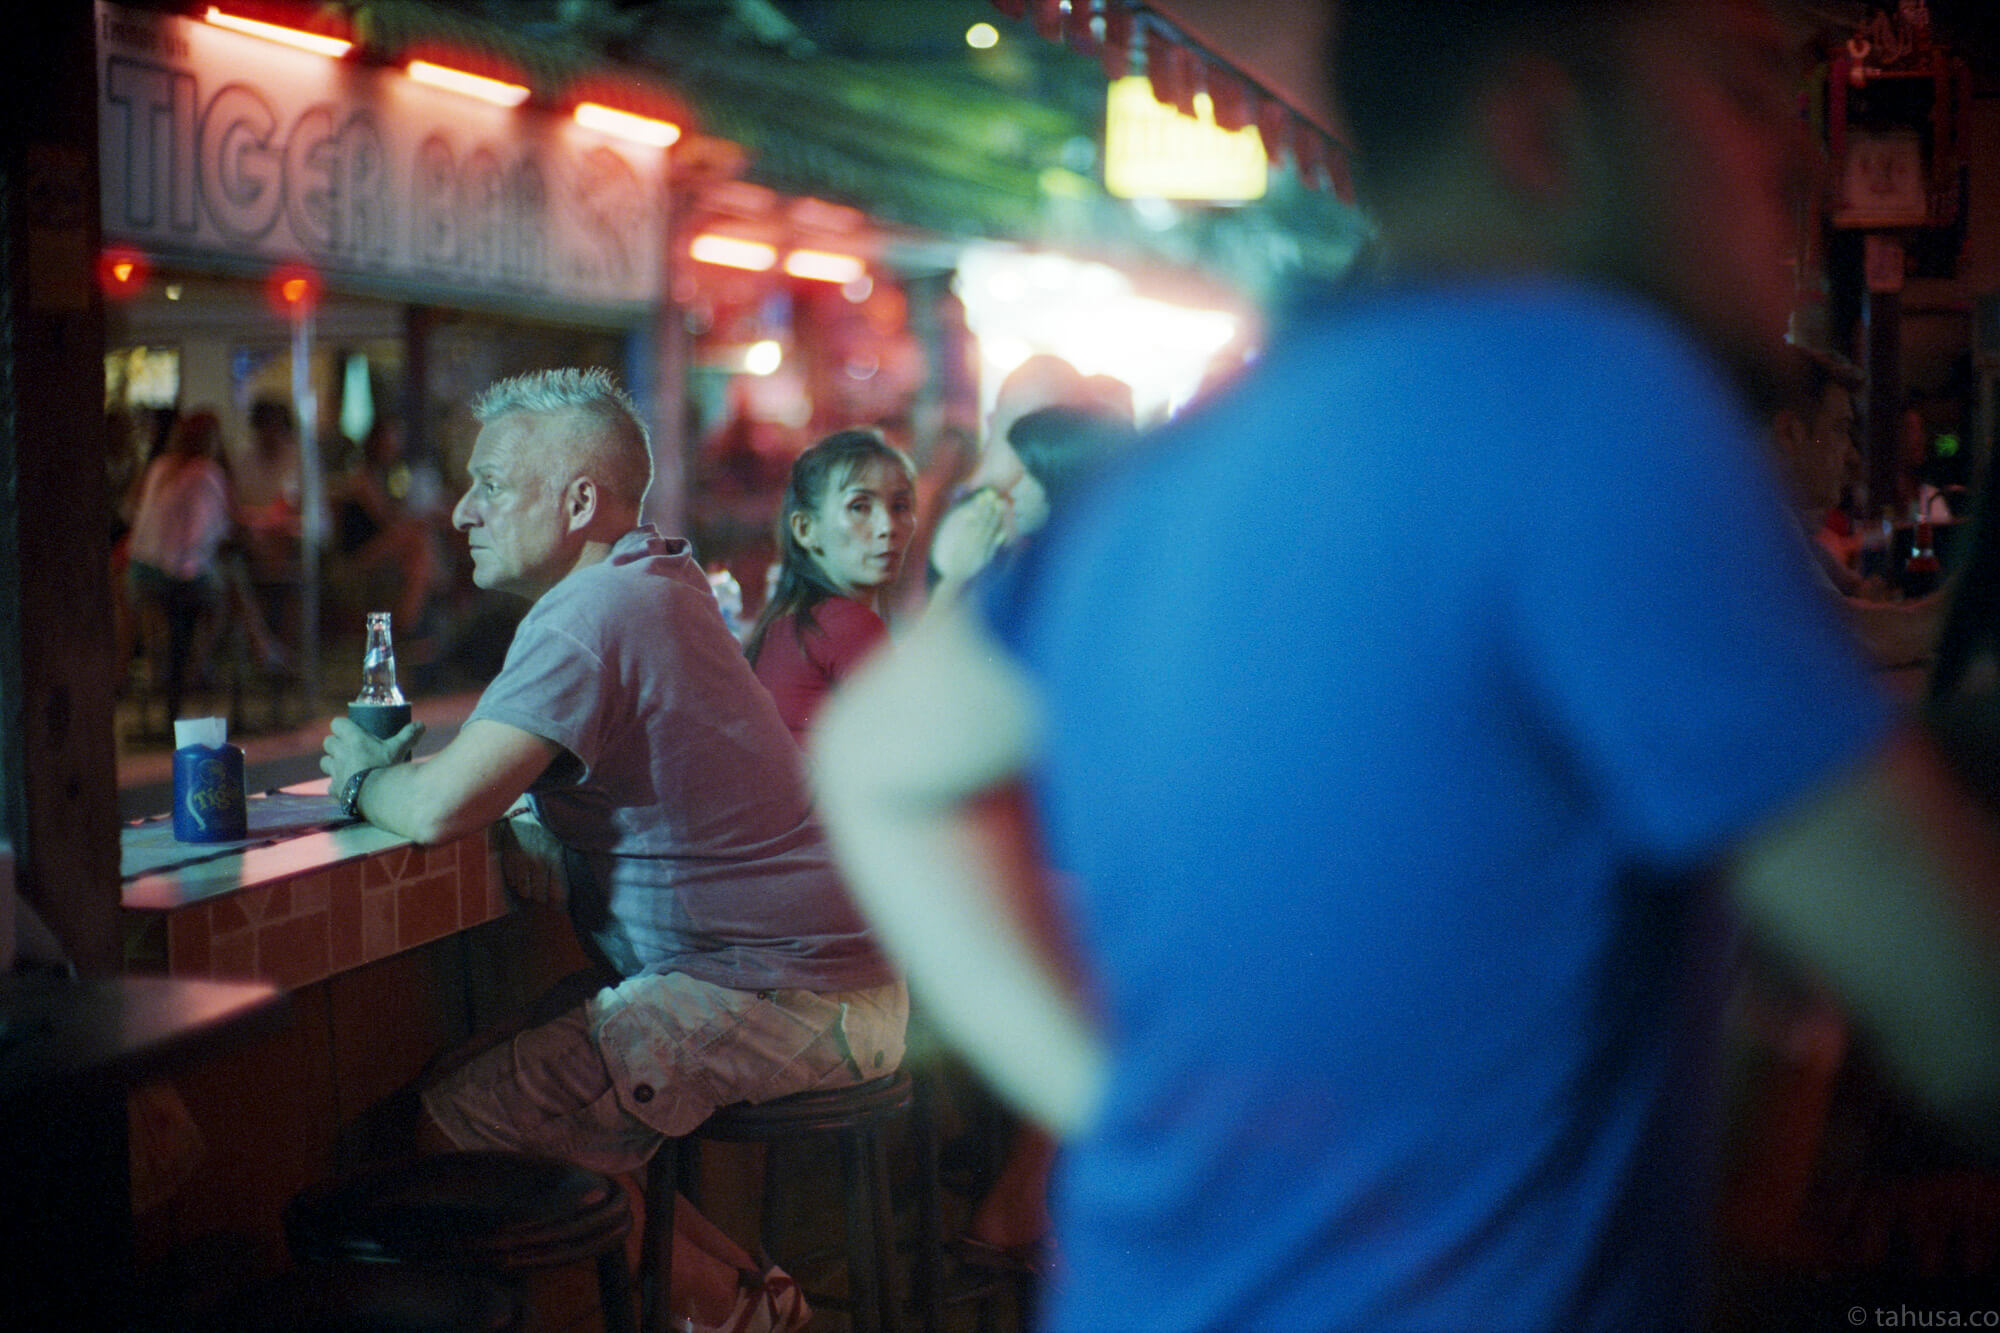 guy-enjoying-his-own-drink-alone-in-bar-pattaya-thailand-HK-Cinestill-800T-800-iso800-Tungsten-film-movie-kodak-with-Noctilux-50mm-f1-f1.0-e58-v1-large-aperture-bokeh-grain-pushed-street-snap